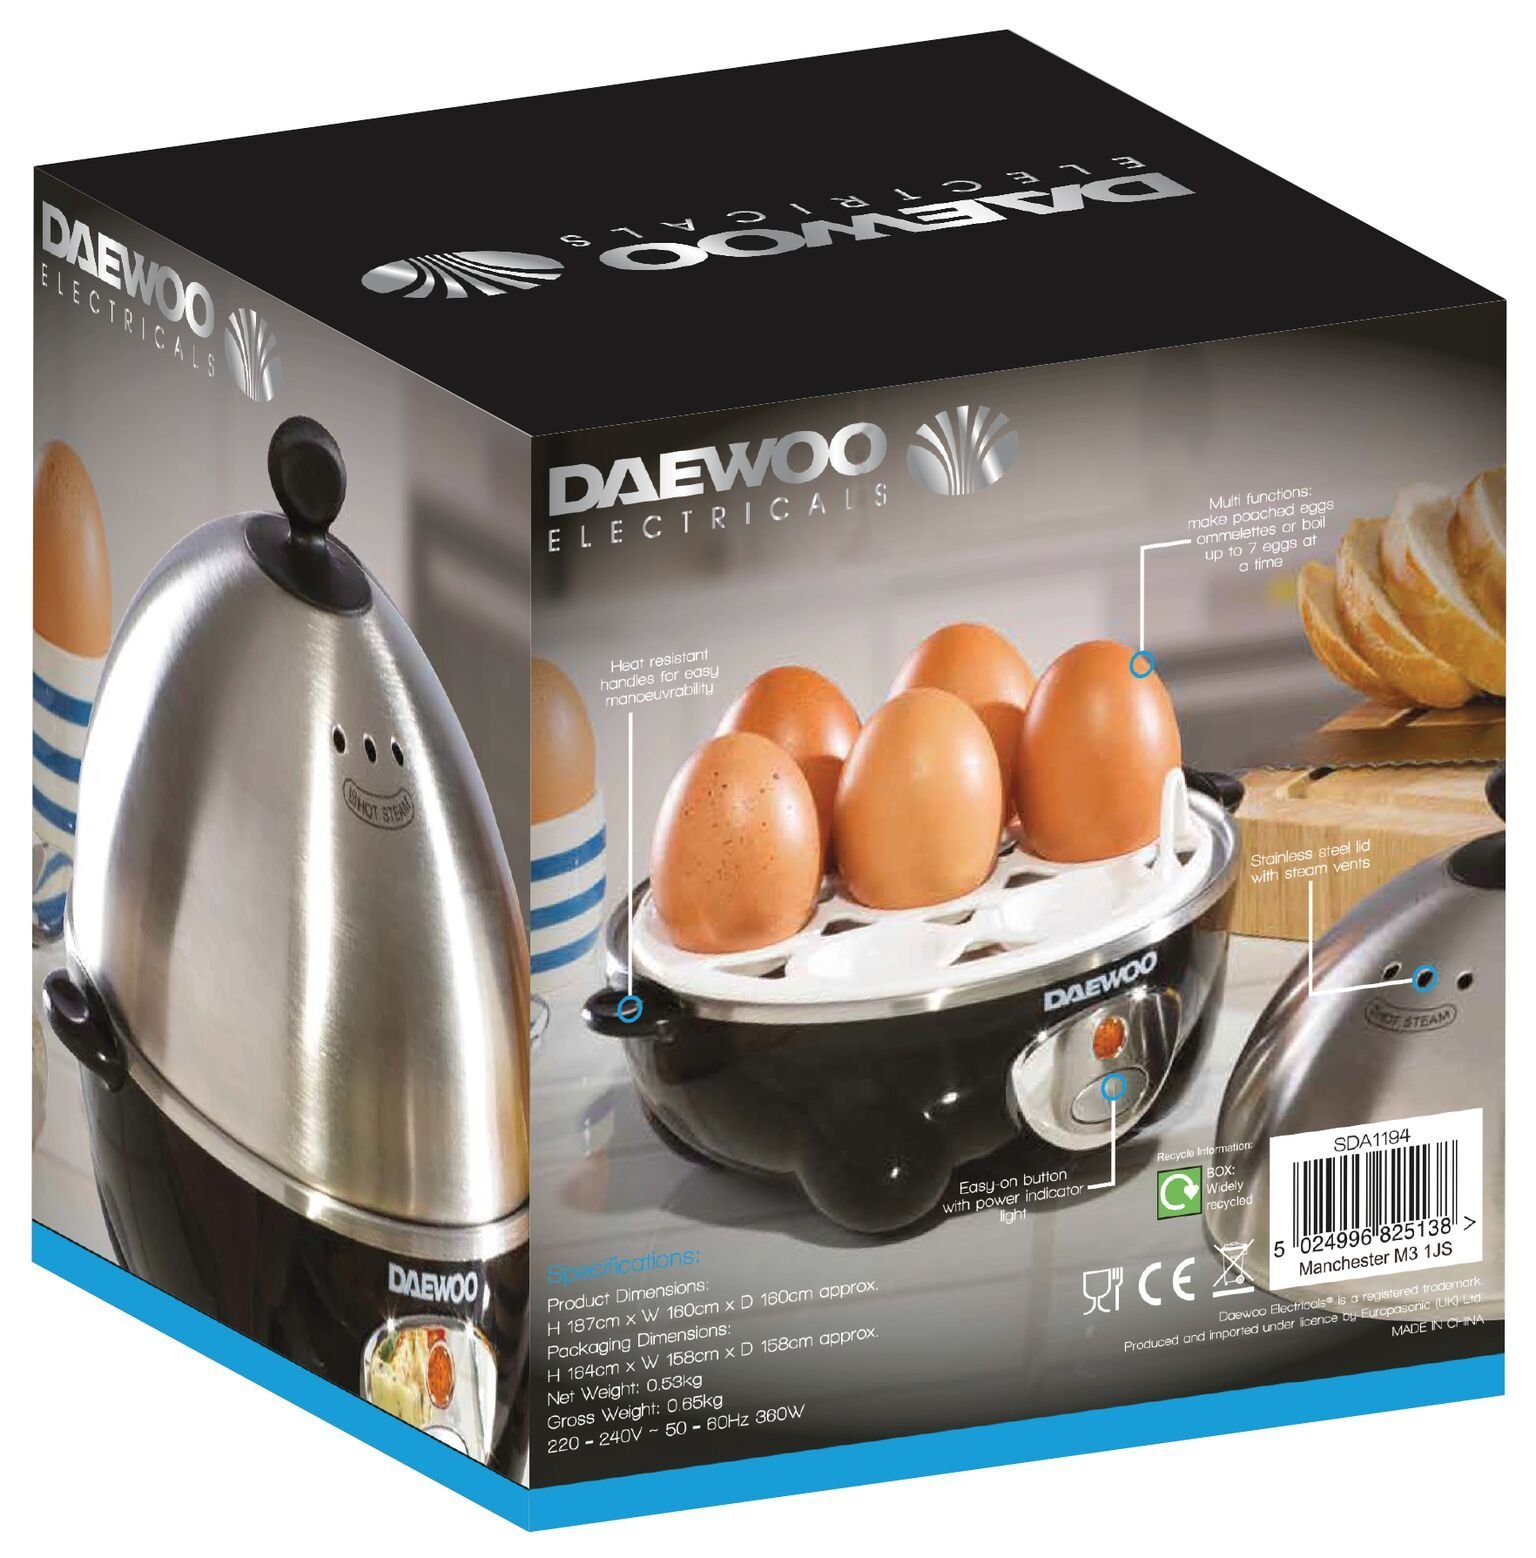 712hk oe%2BWL - Daewoo 360W Compact Egg & Omelette Cooker with Steam Vents, Boil Dry Protection, Heat-Resistant Handles - Silver/Black